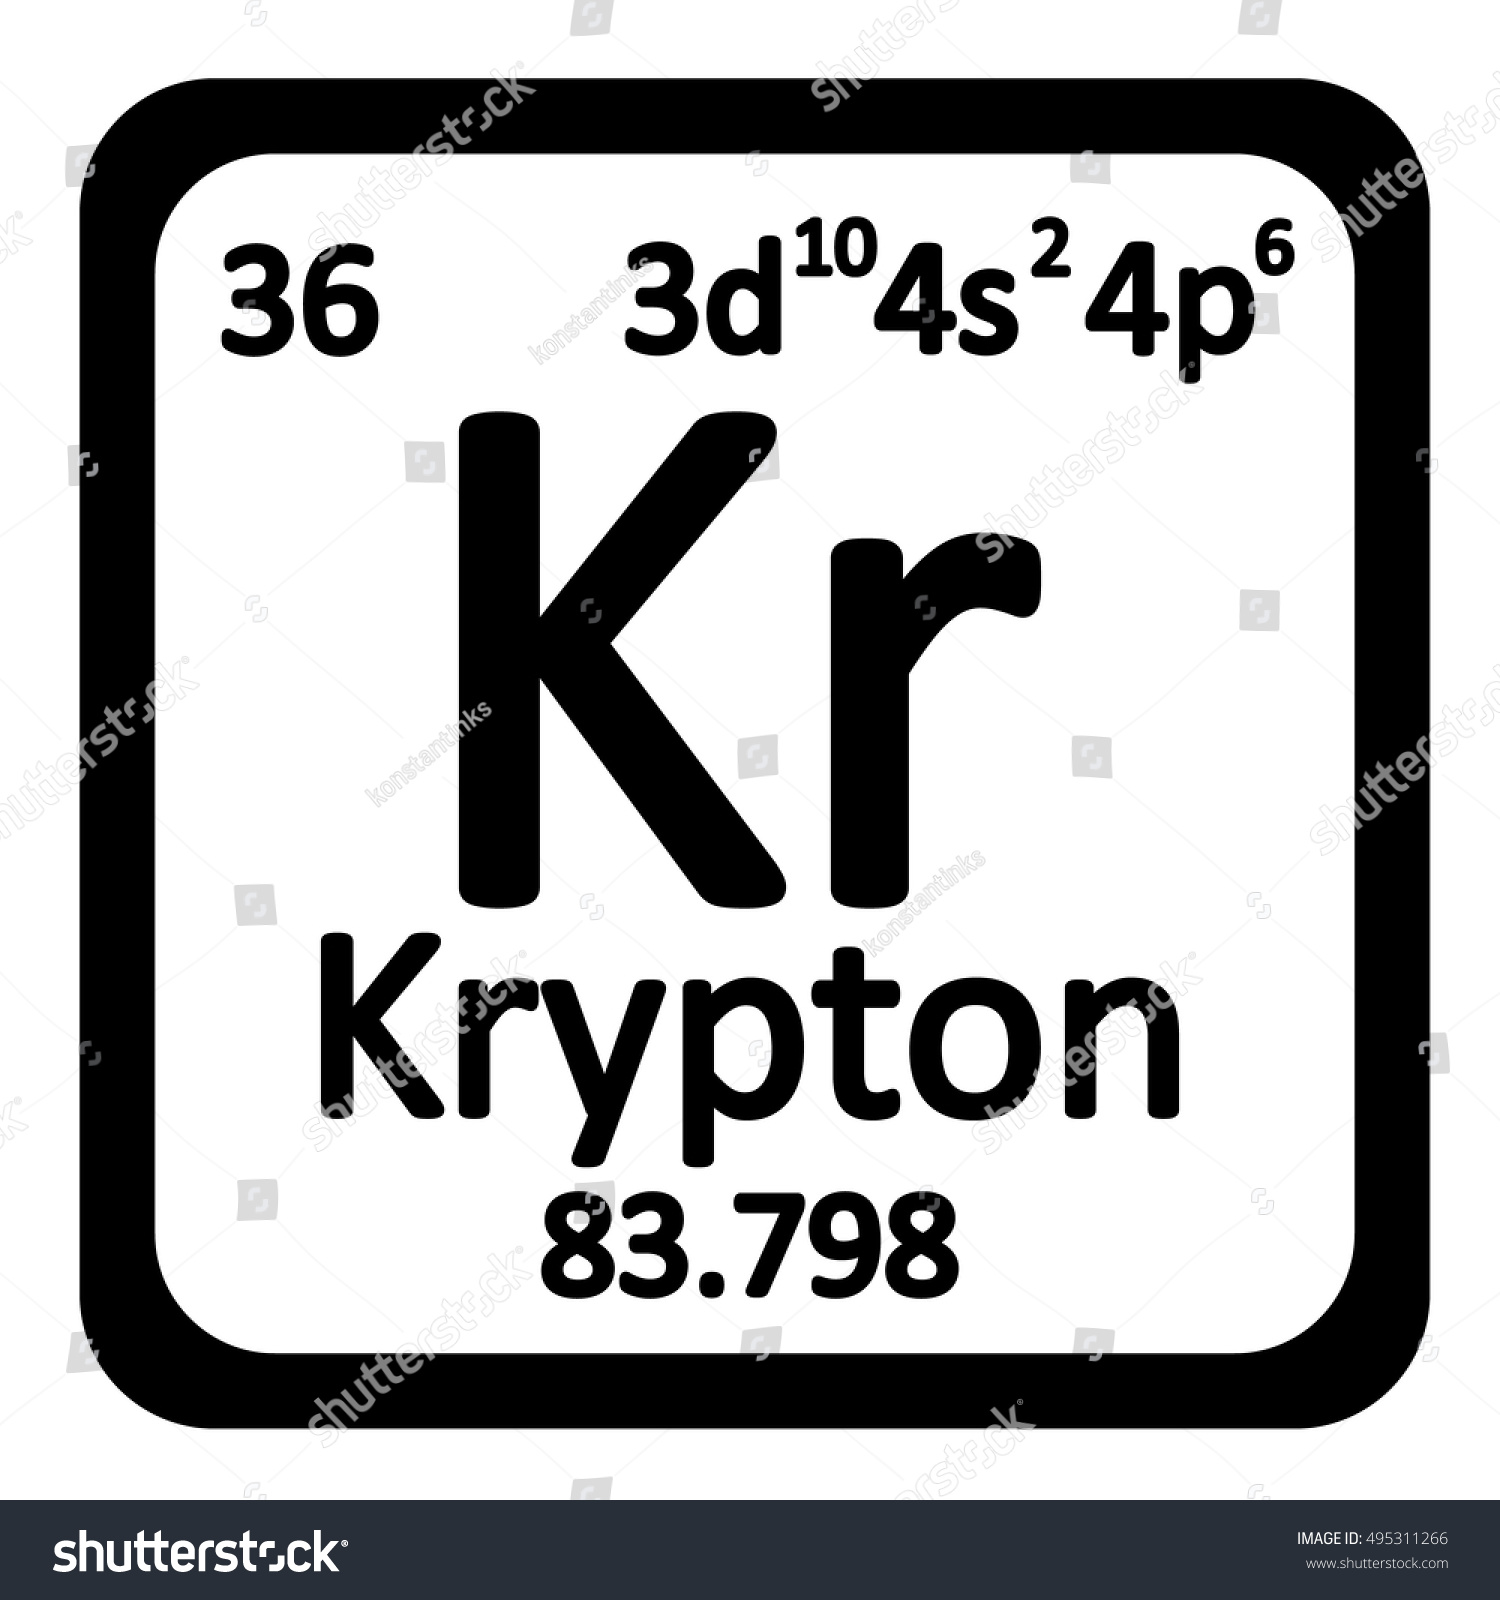 Periodic table element krypton icon on stock vector 495311266 periodic table element krypton icon on white background vector illustration gamestrikefo Image collections